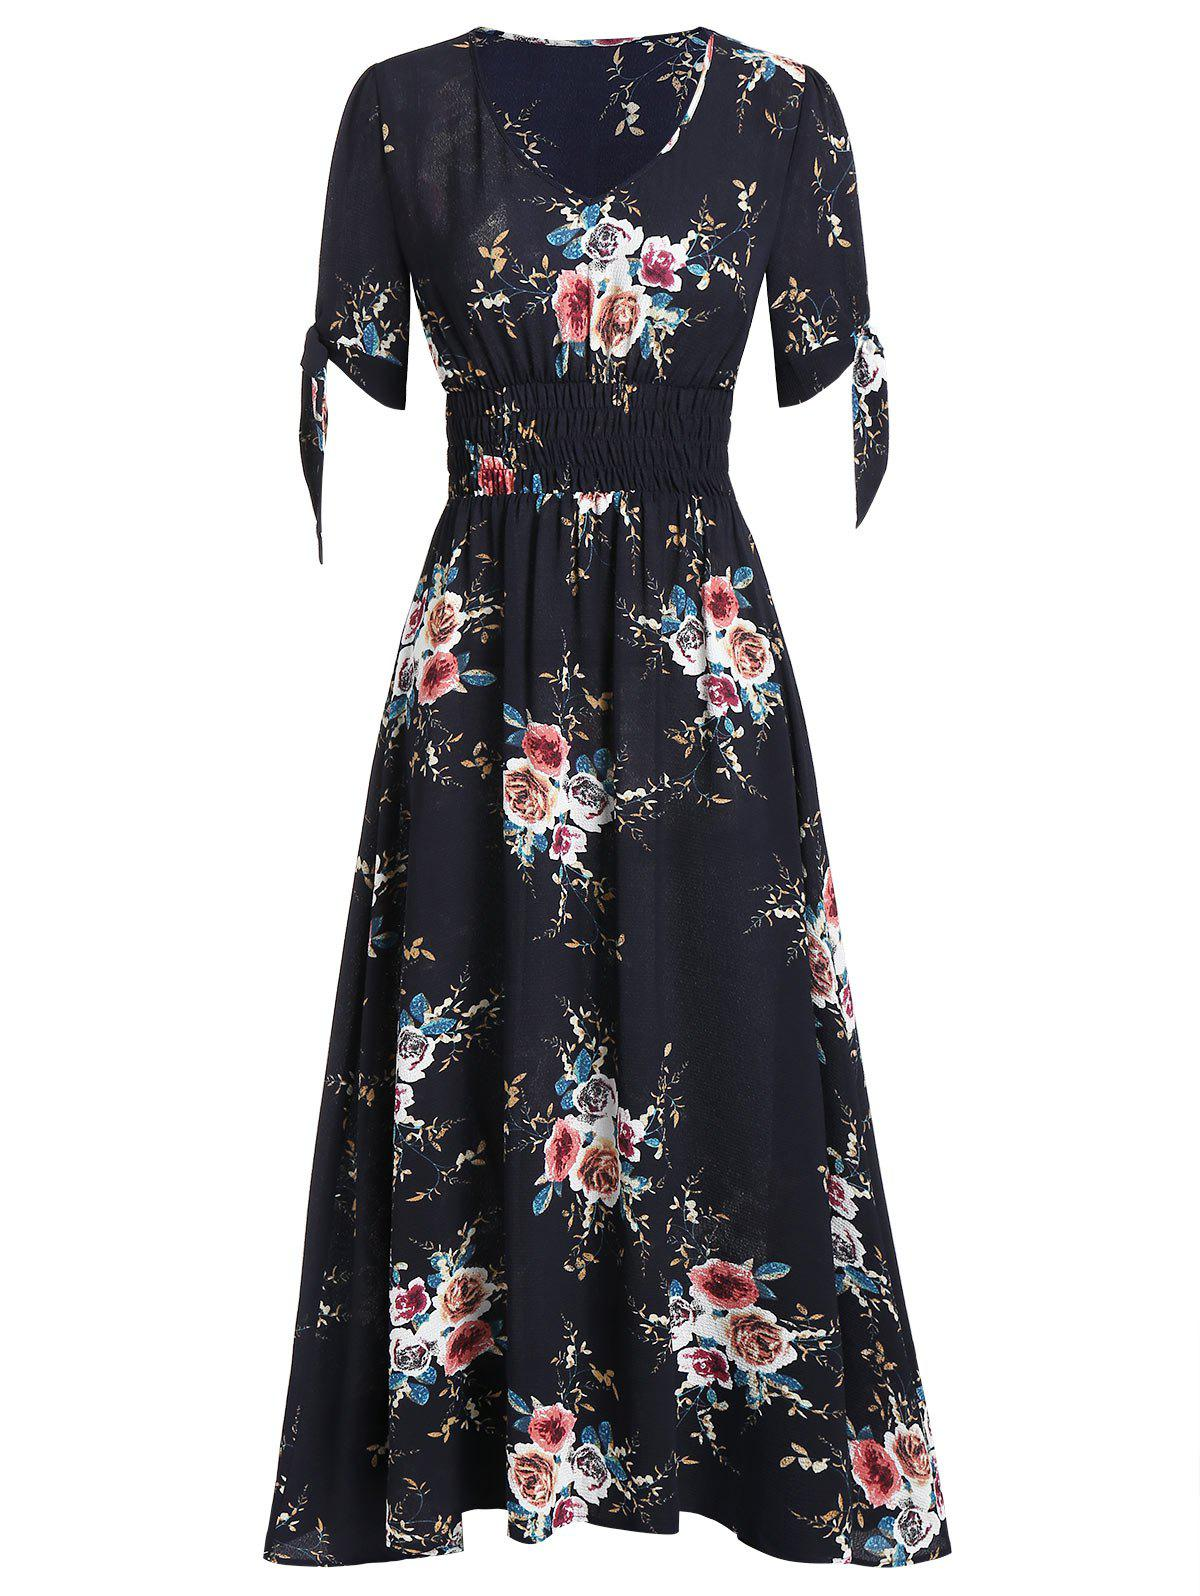 Fashion Floral Print Smocked Fit And Flare Maxi Dress